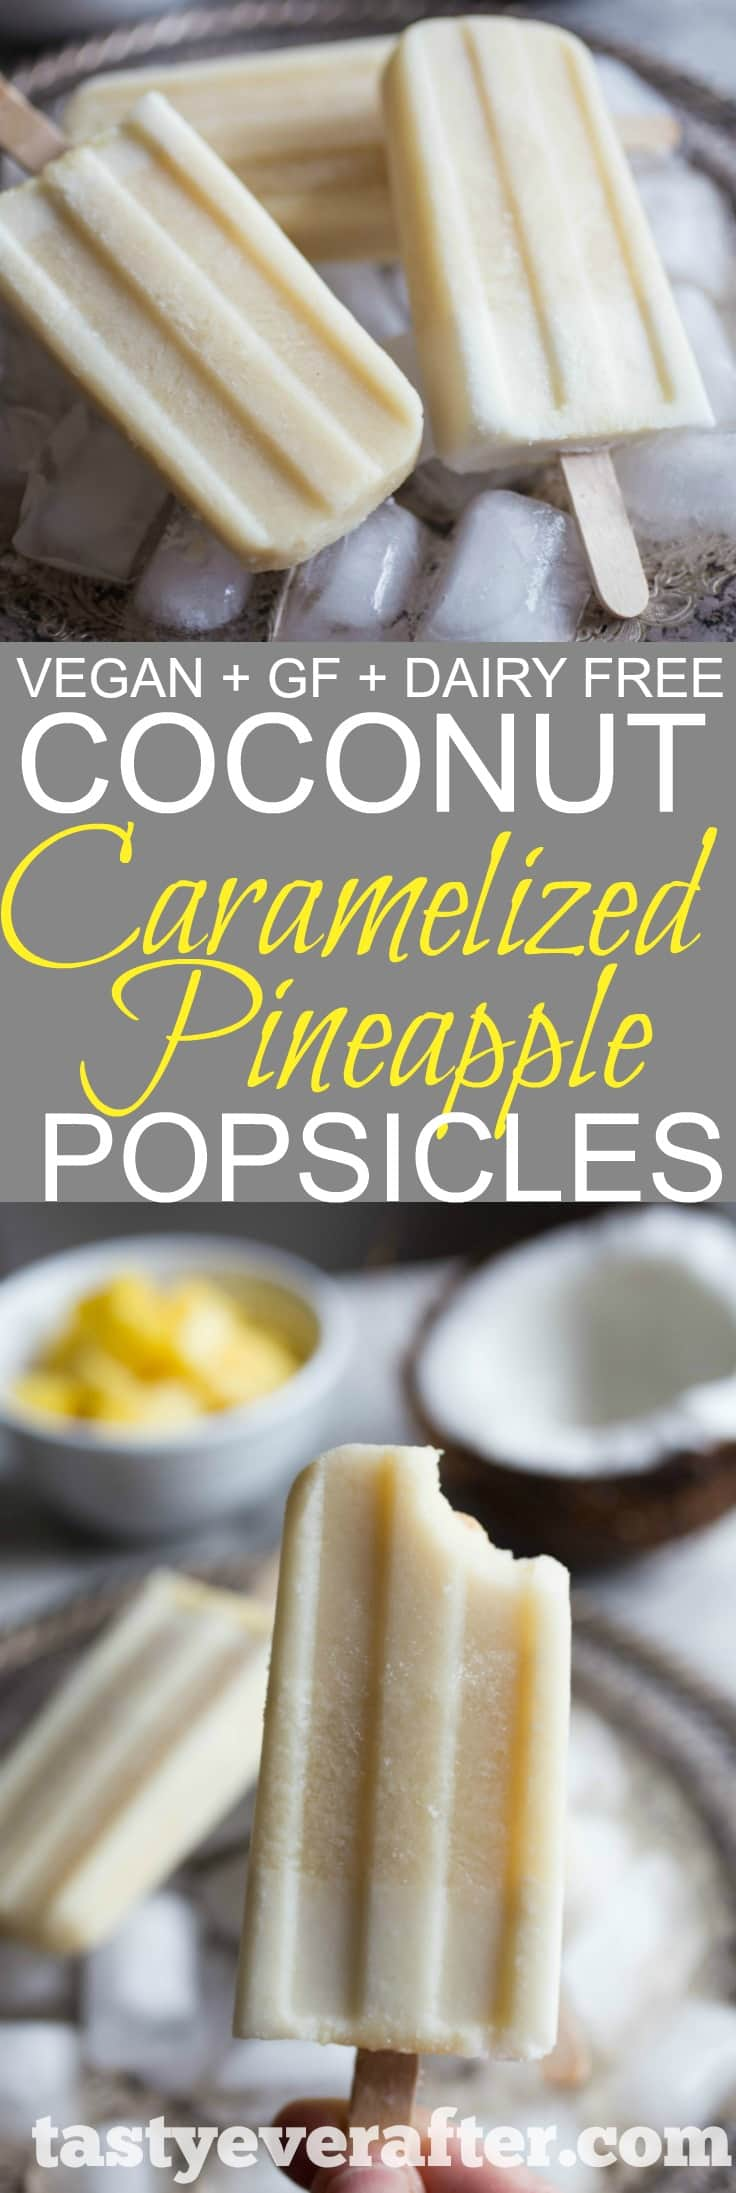 Coconut + Caramelized Pineapple Healthy Popsicles Recipe